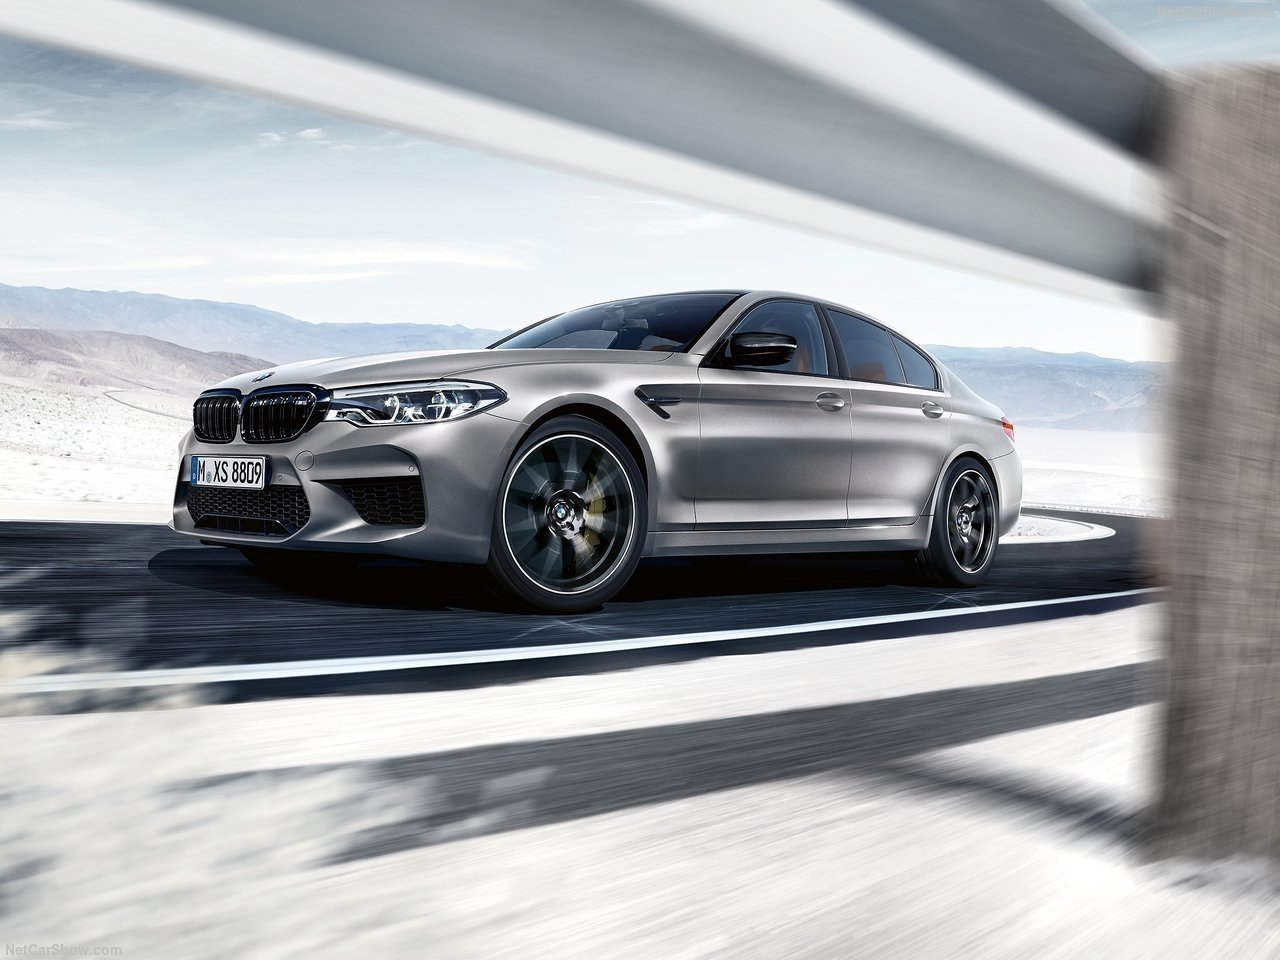 2019 BMW M5 COMPETİTİON